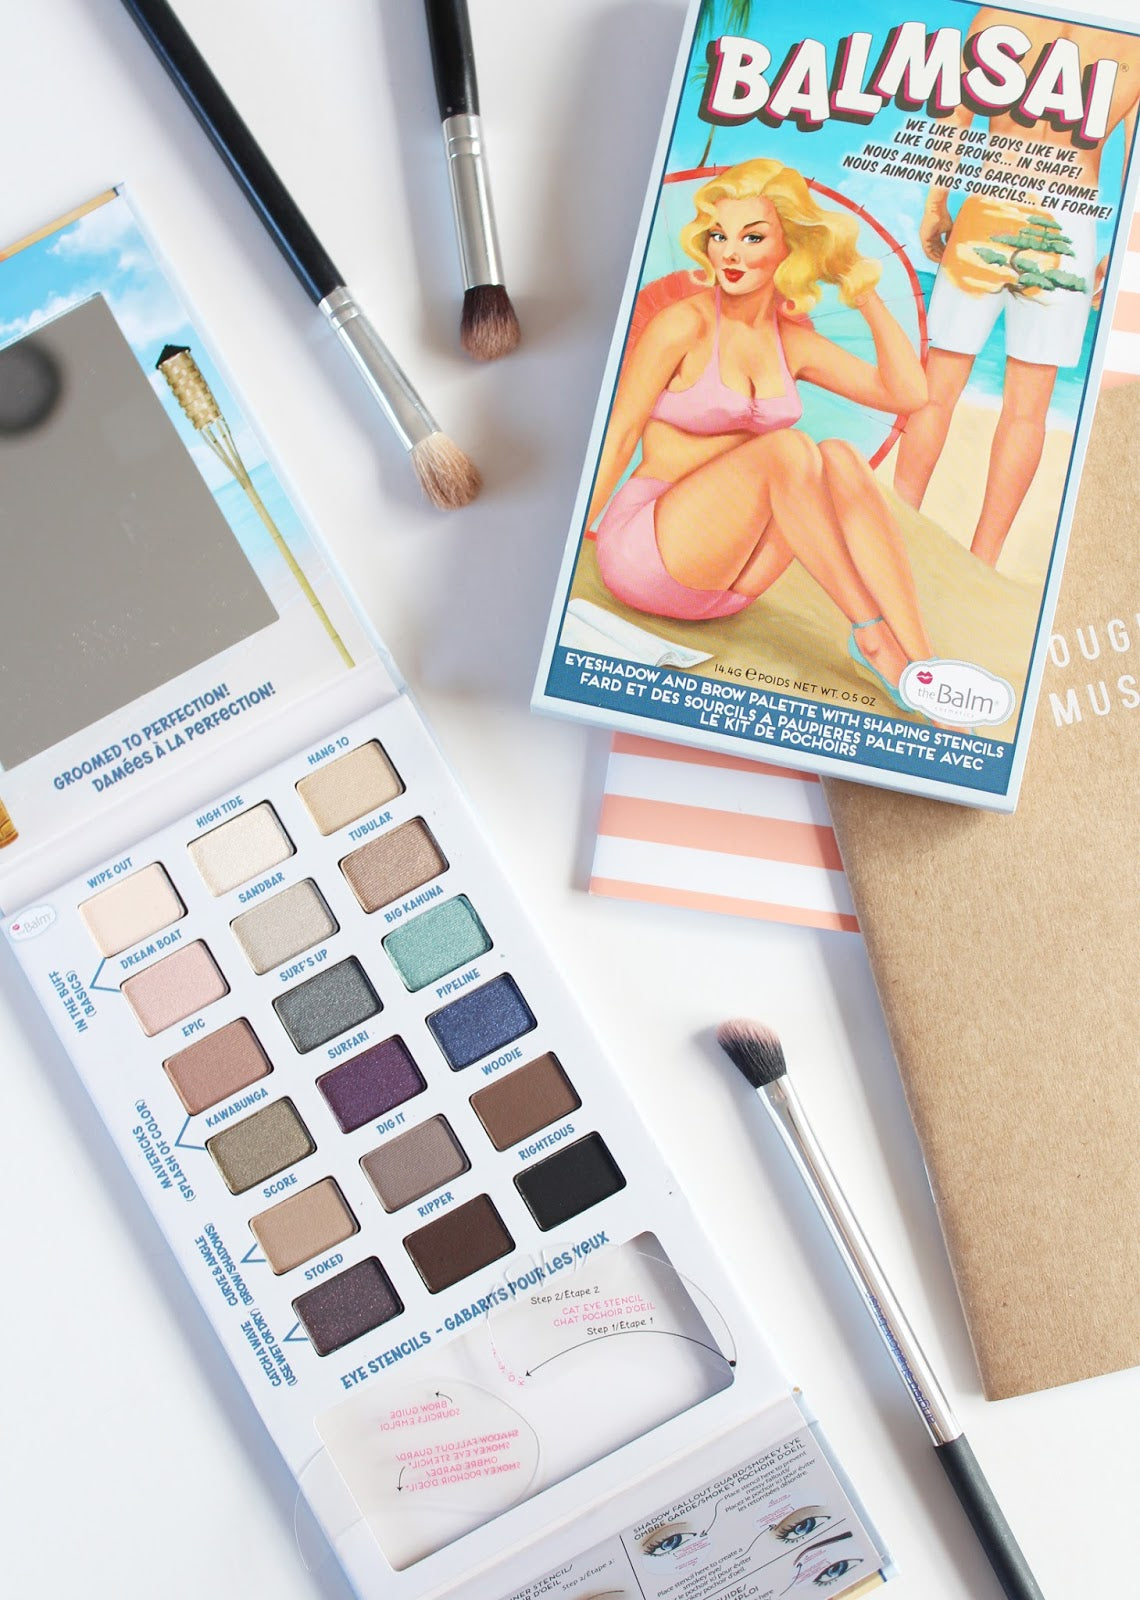 The Balm Balmsi Eyeshadow Palette